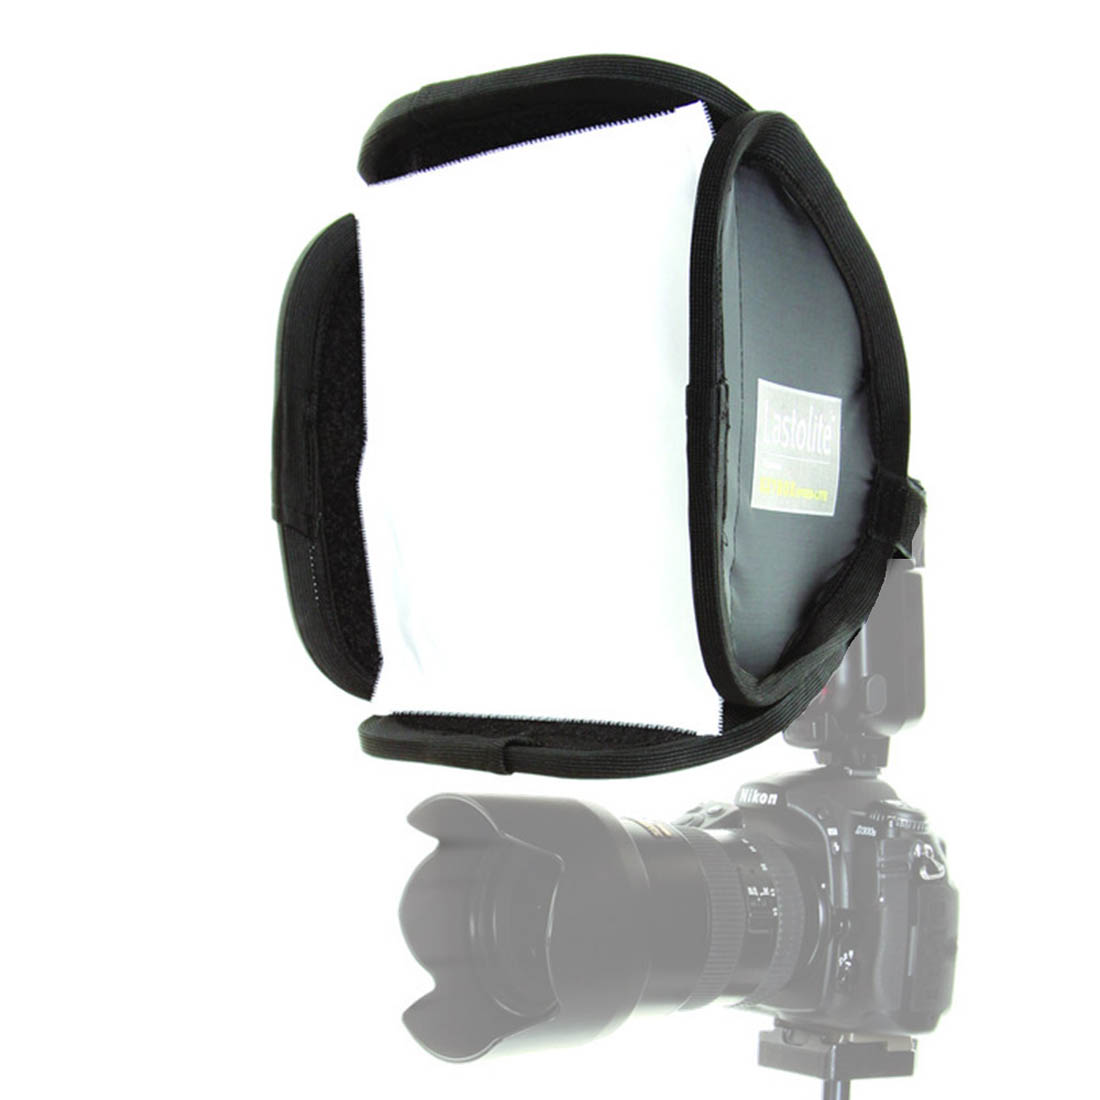 Softbox Lastolite Ezybox Speed-Lite